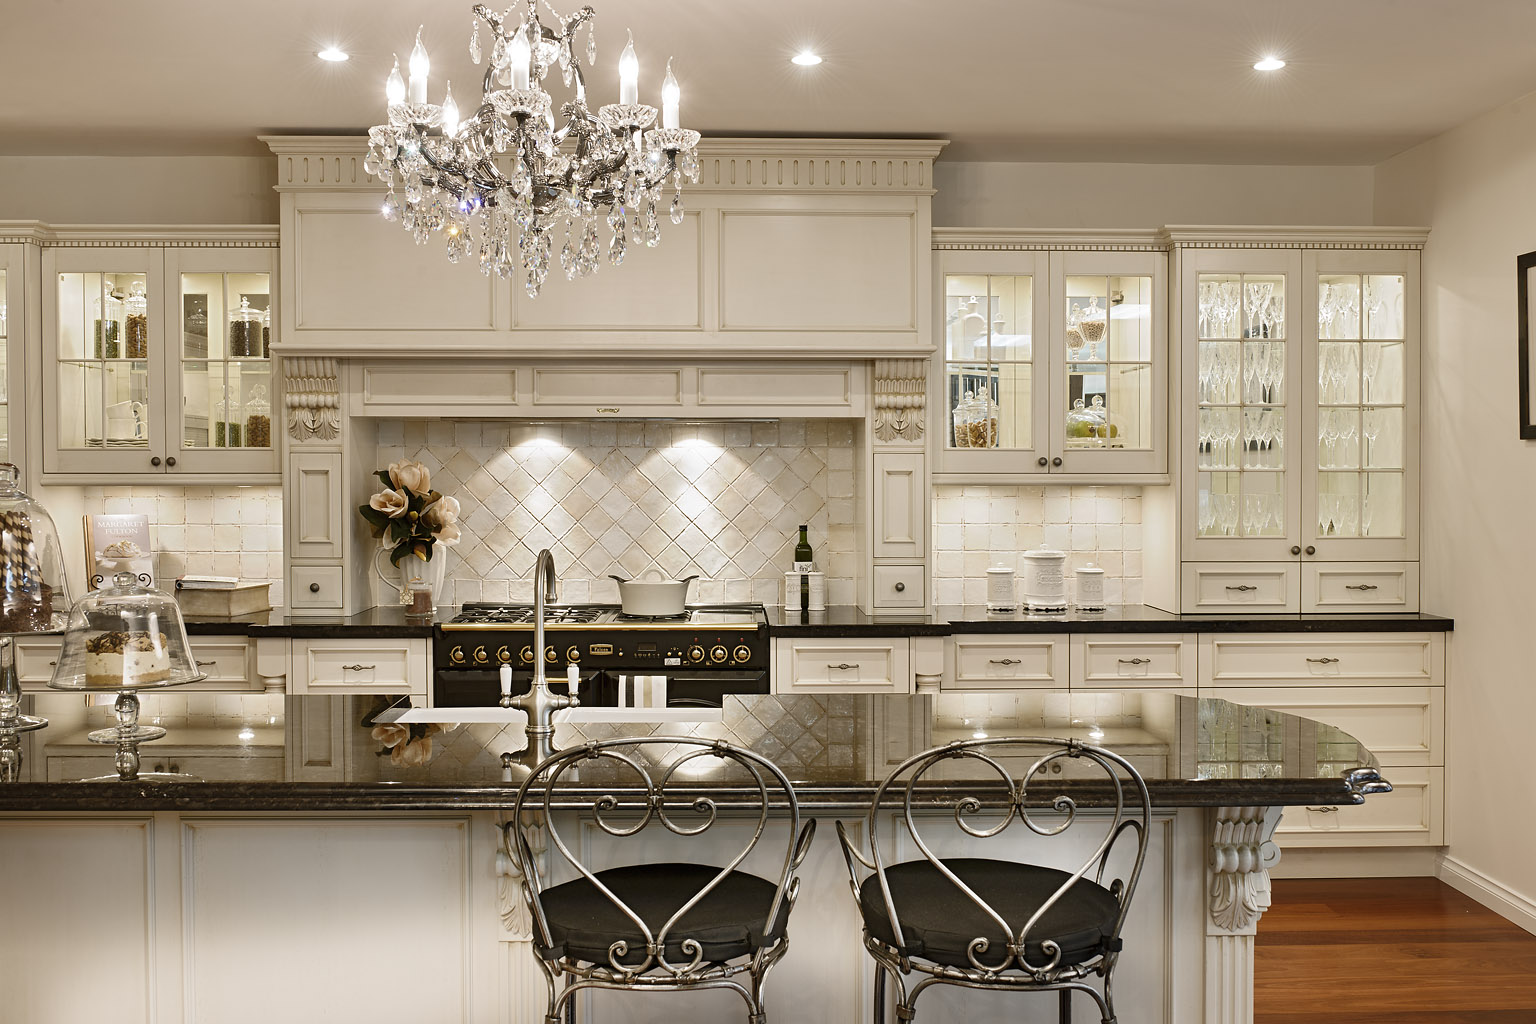 Charming Large Kitchen Design (View 4 of 10)